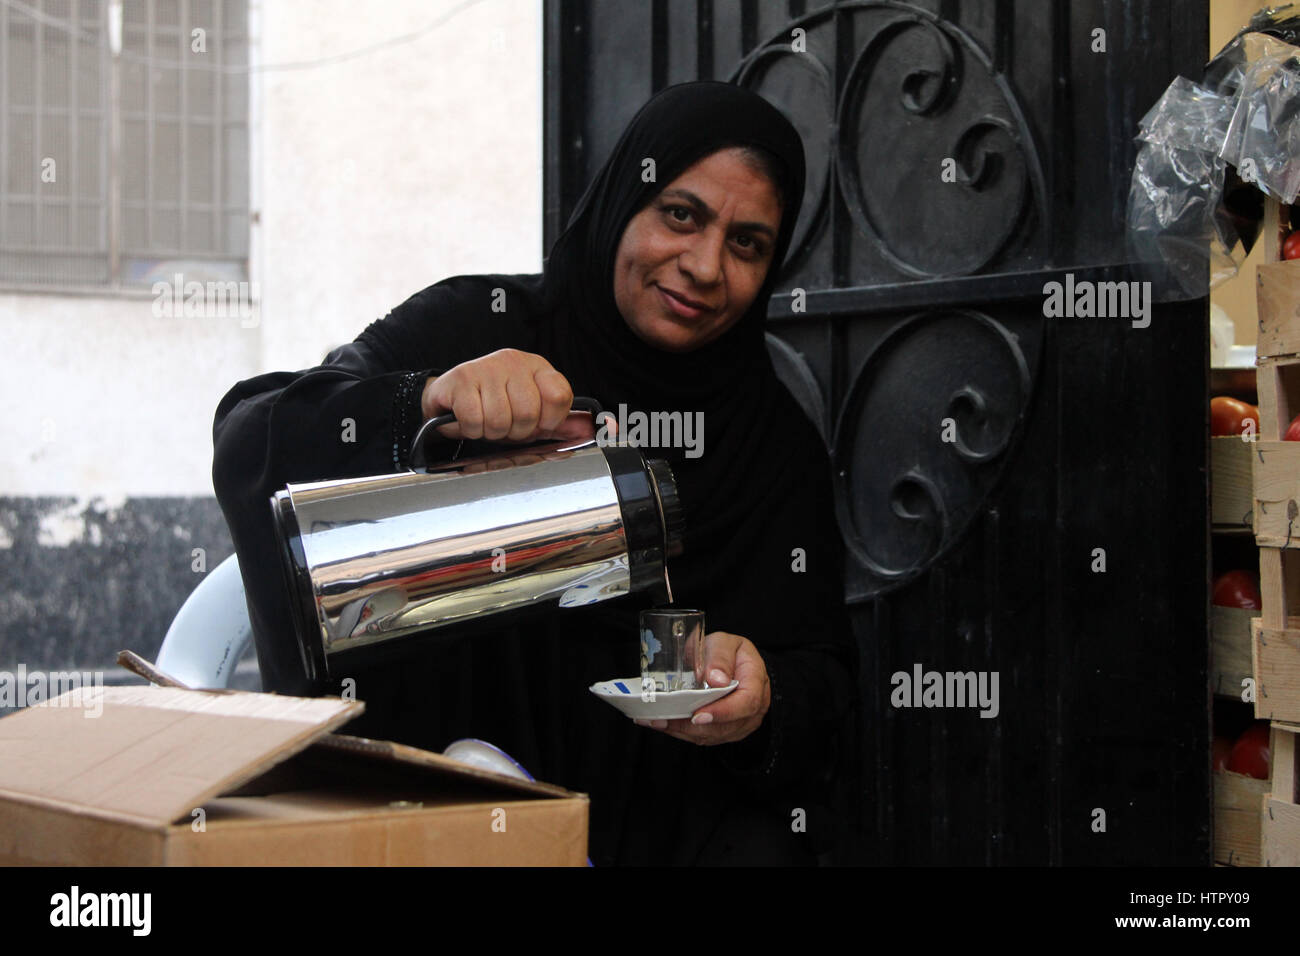 A Bahraini Shia woman, wearing the traditional black abaya, pours a cup of tea. - Stock Image